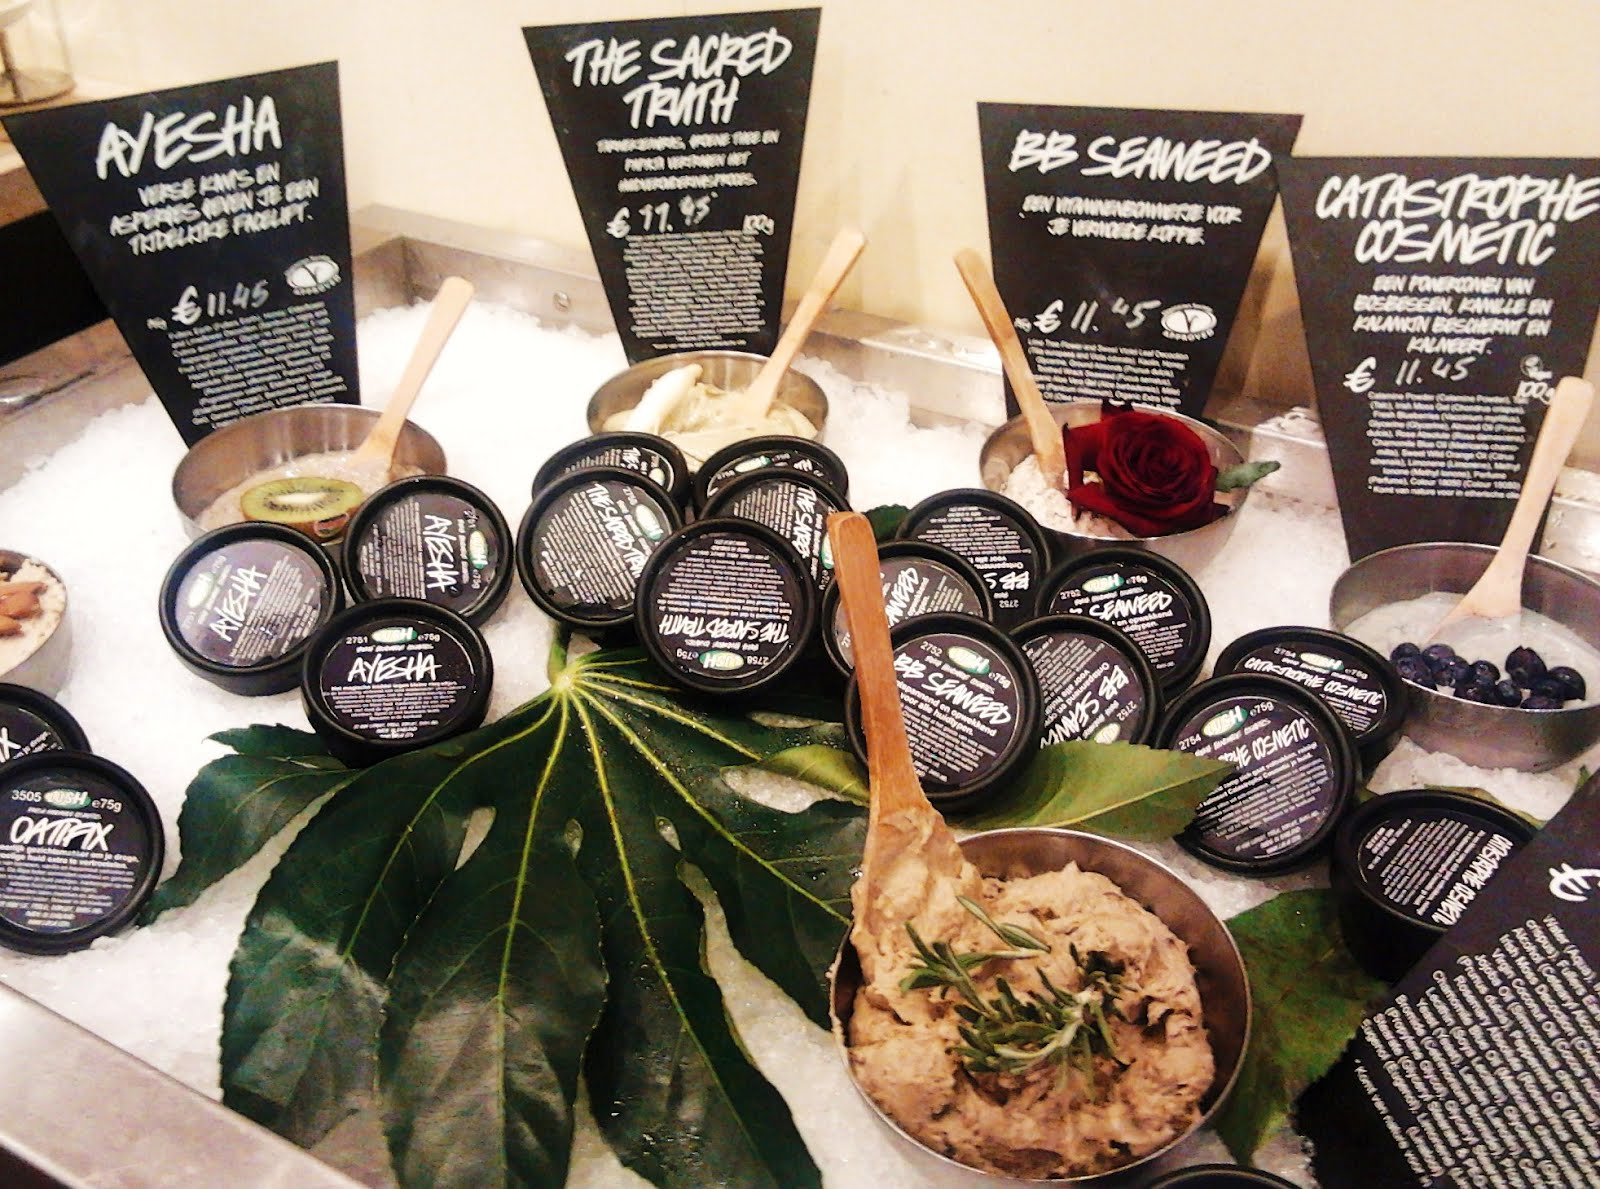 Lush is not a cocktail or brand of booze, though that would be pretty awesome. They are an eco-friendly outfit that is out to make the world a prettier and friendlier place, one person at a time. They make handmade vegan and vegetarian cosmetics that smell divine and hurt no animals in the process.